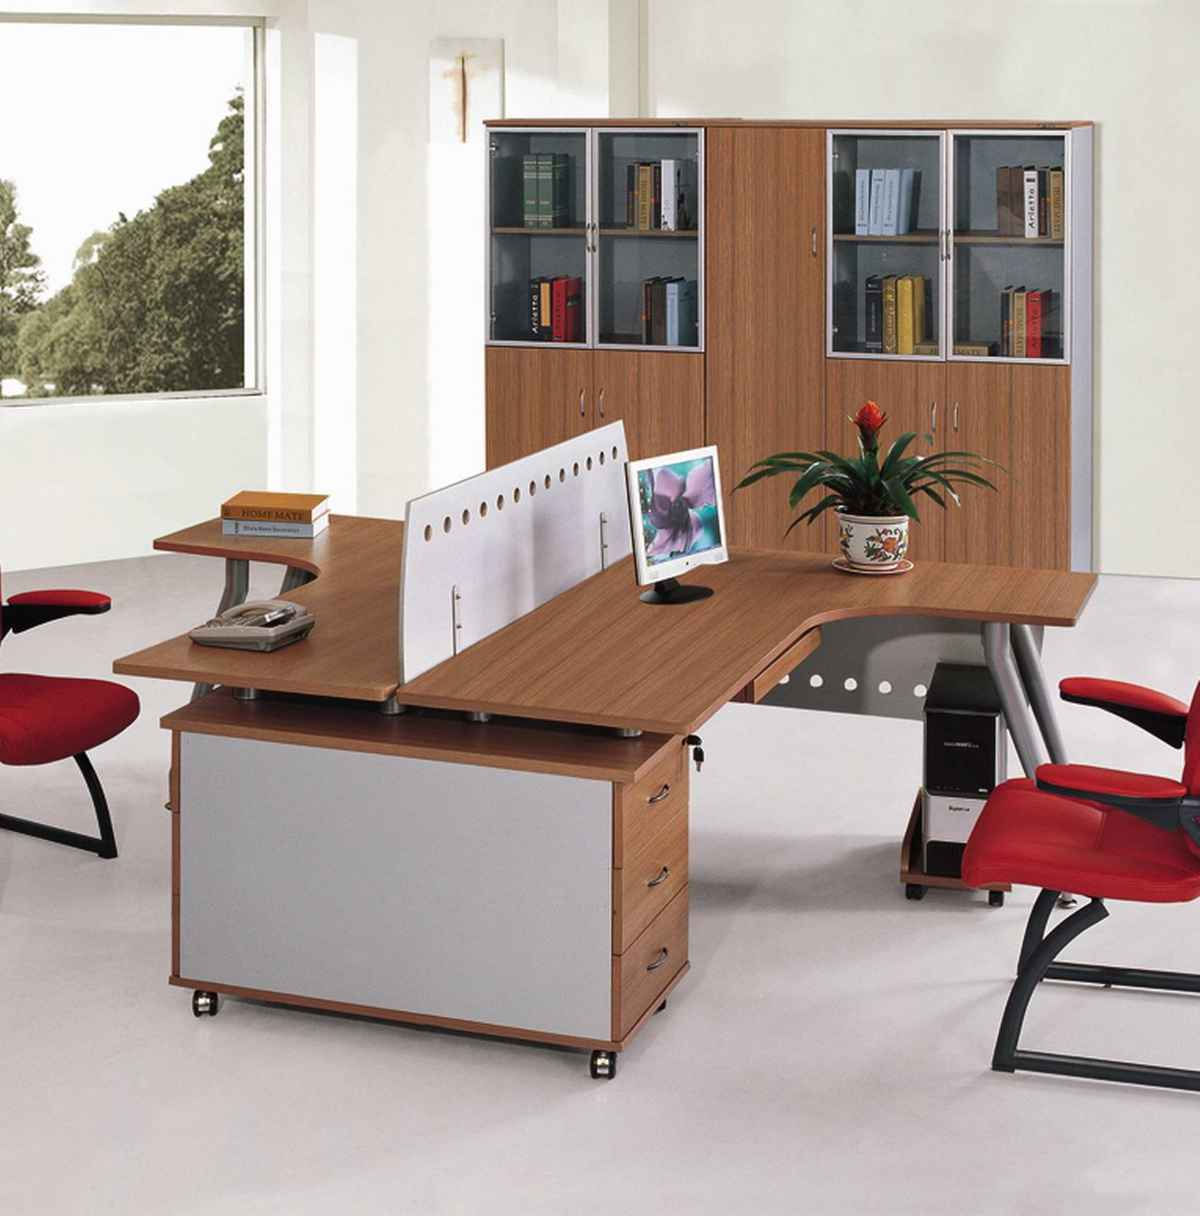 Modern home office furniture office furniture for Home office furniture images